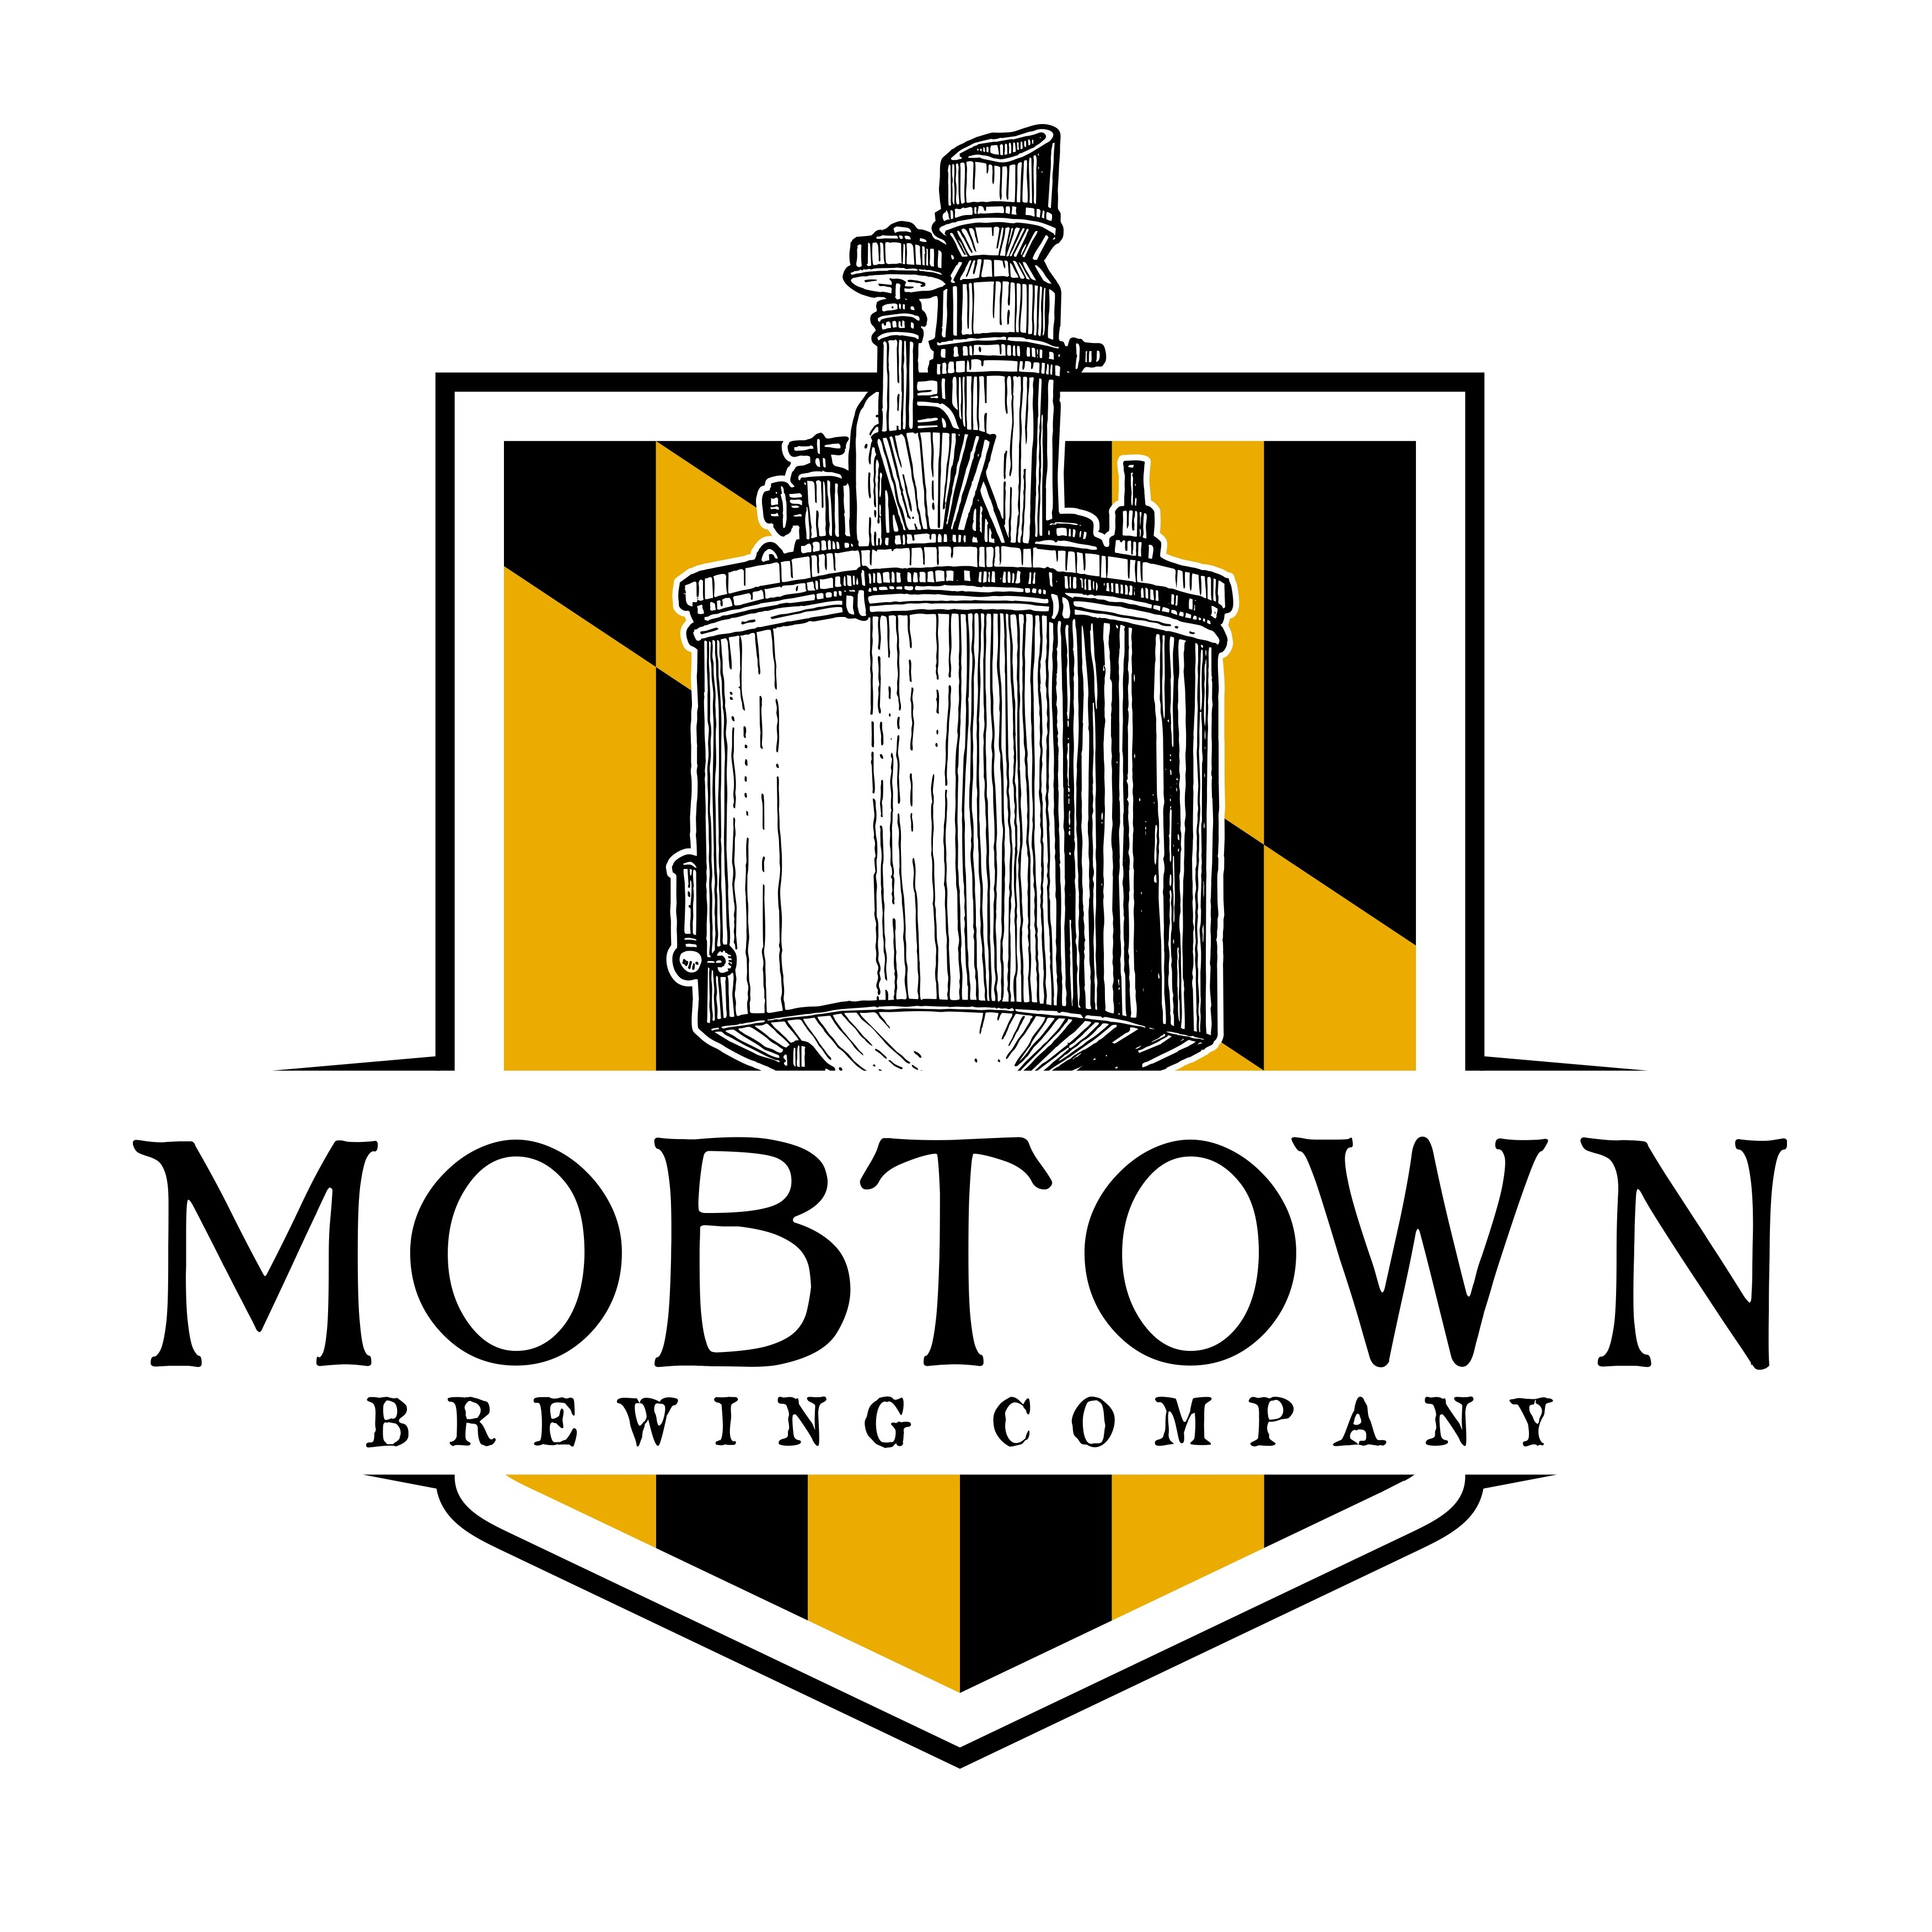 Mobtown Brewing Company